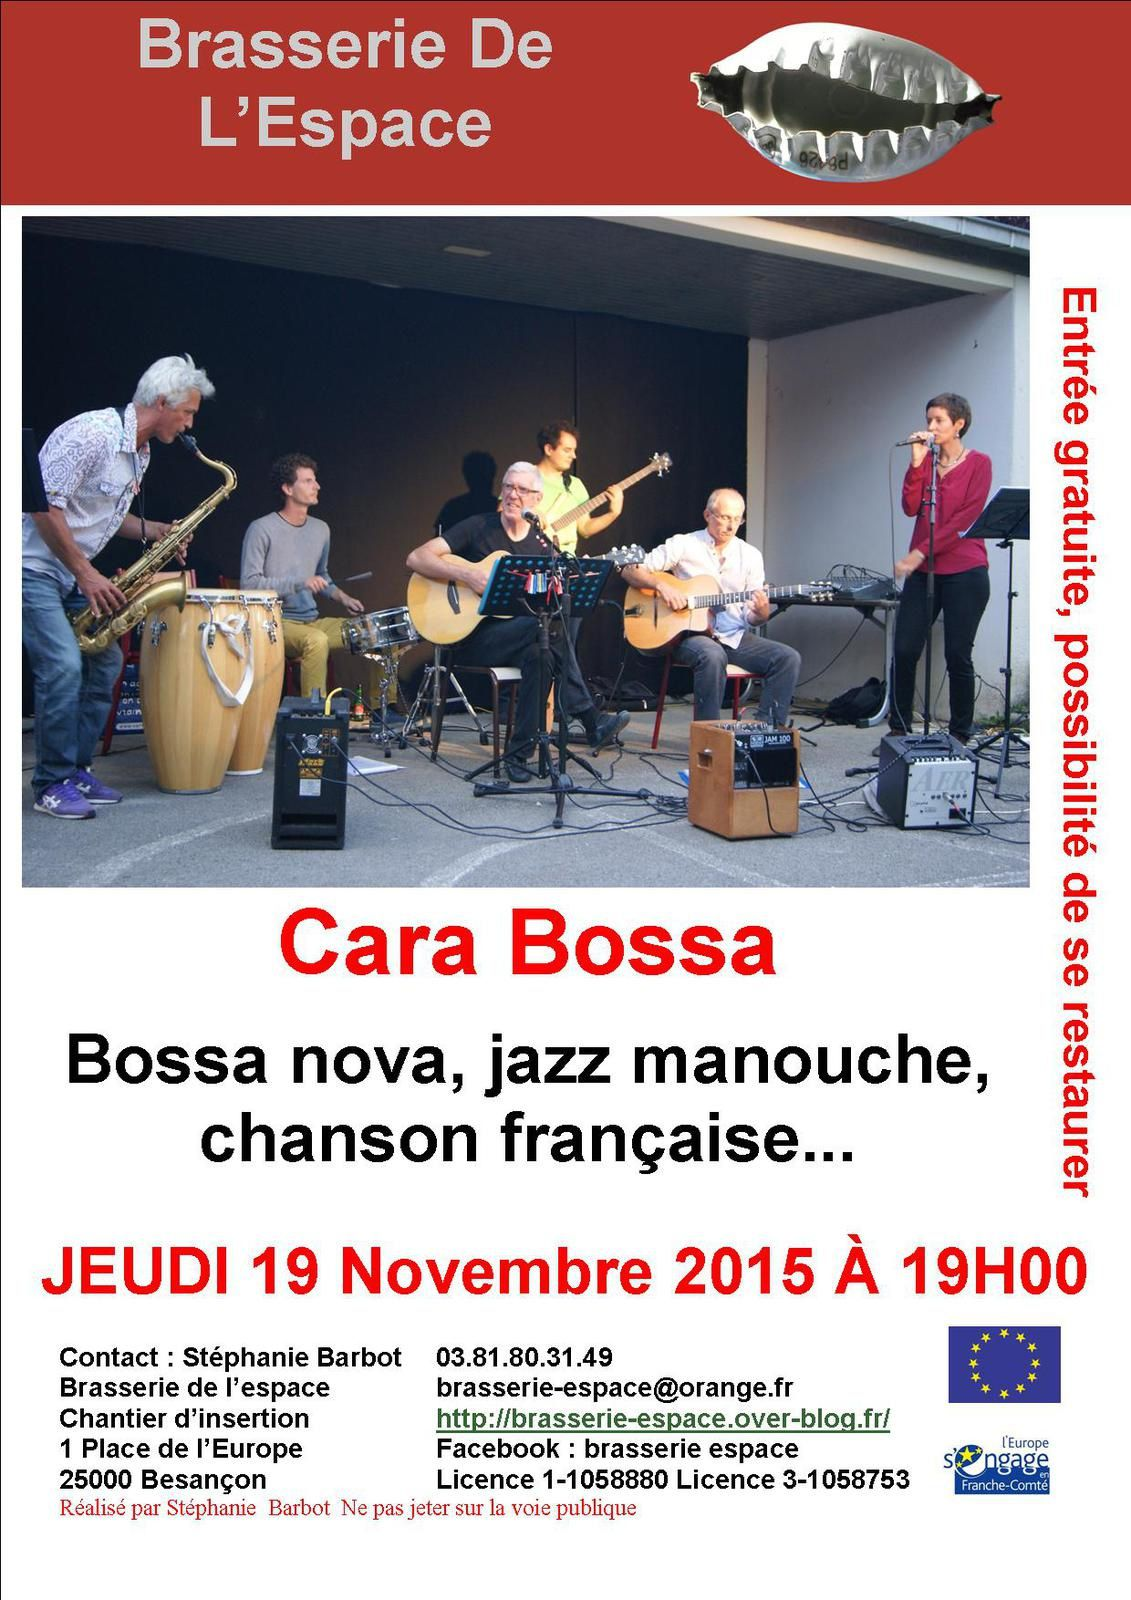 Cara Bossa 19 novembre 2015 Attention changement de programmation